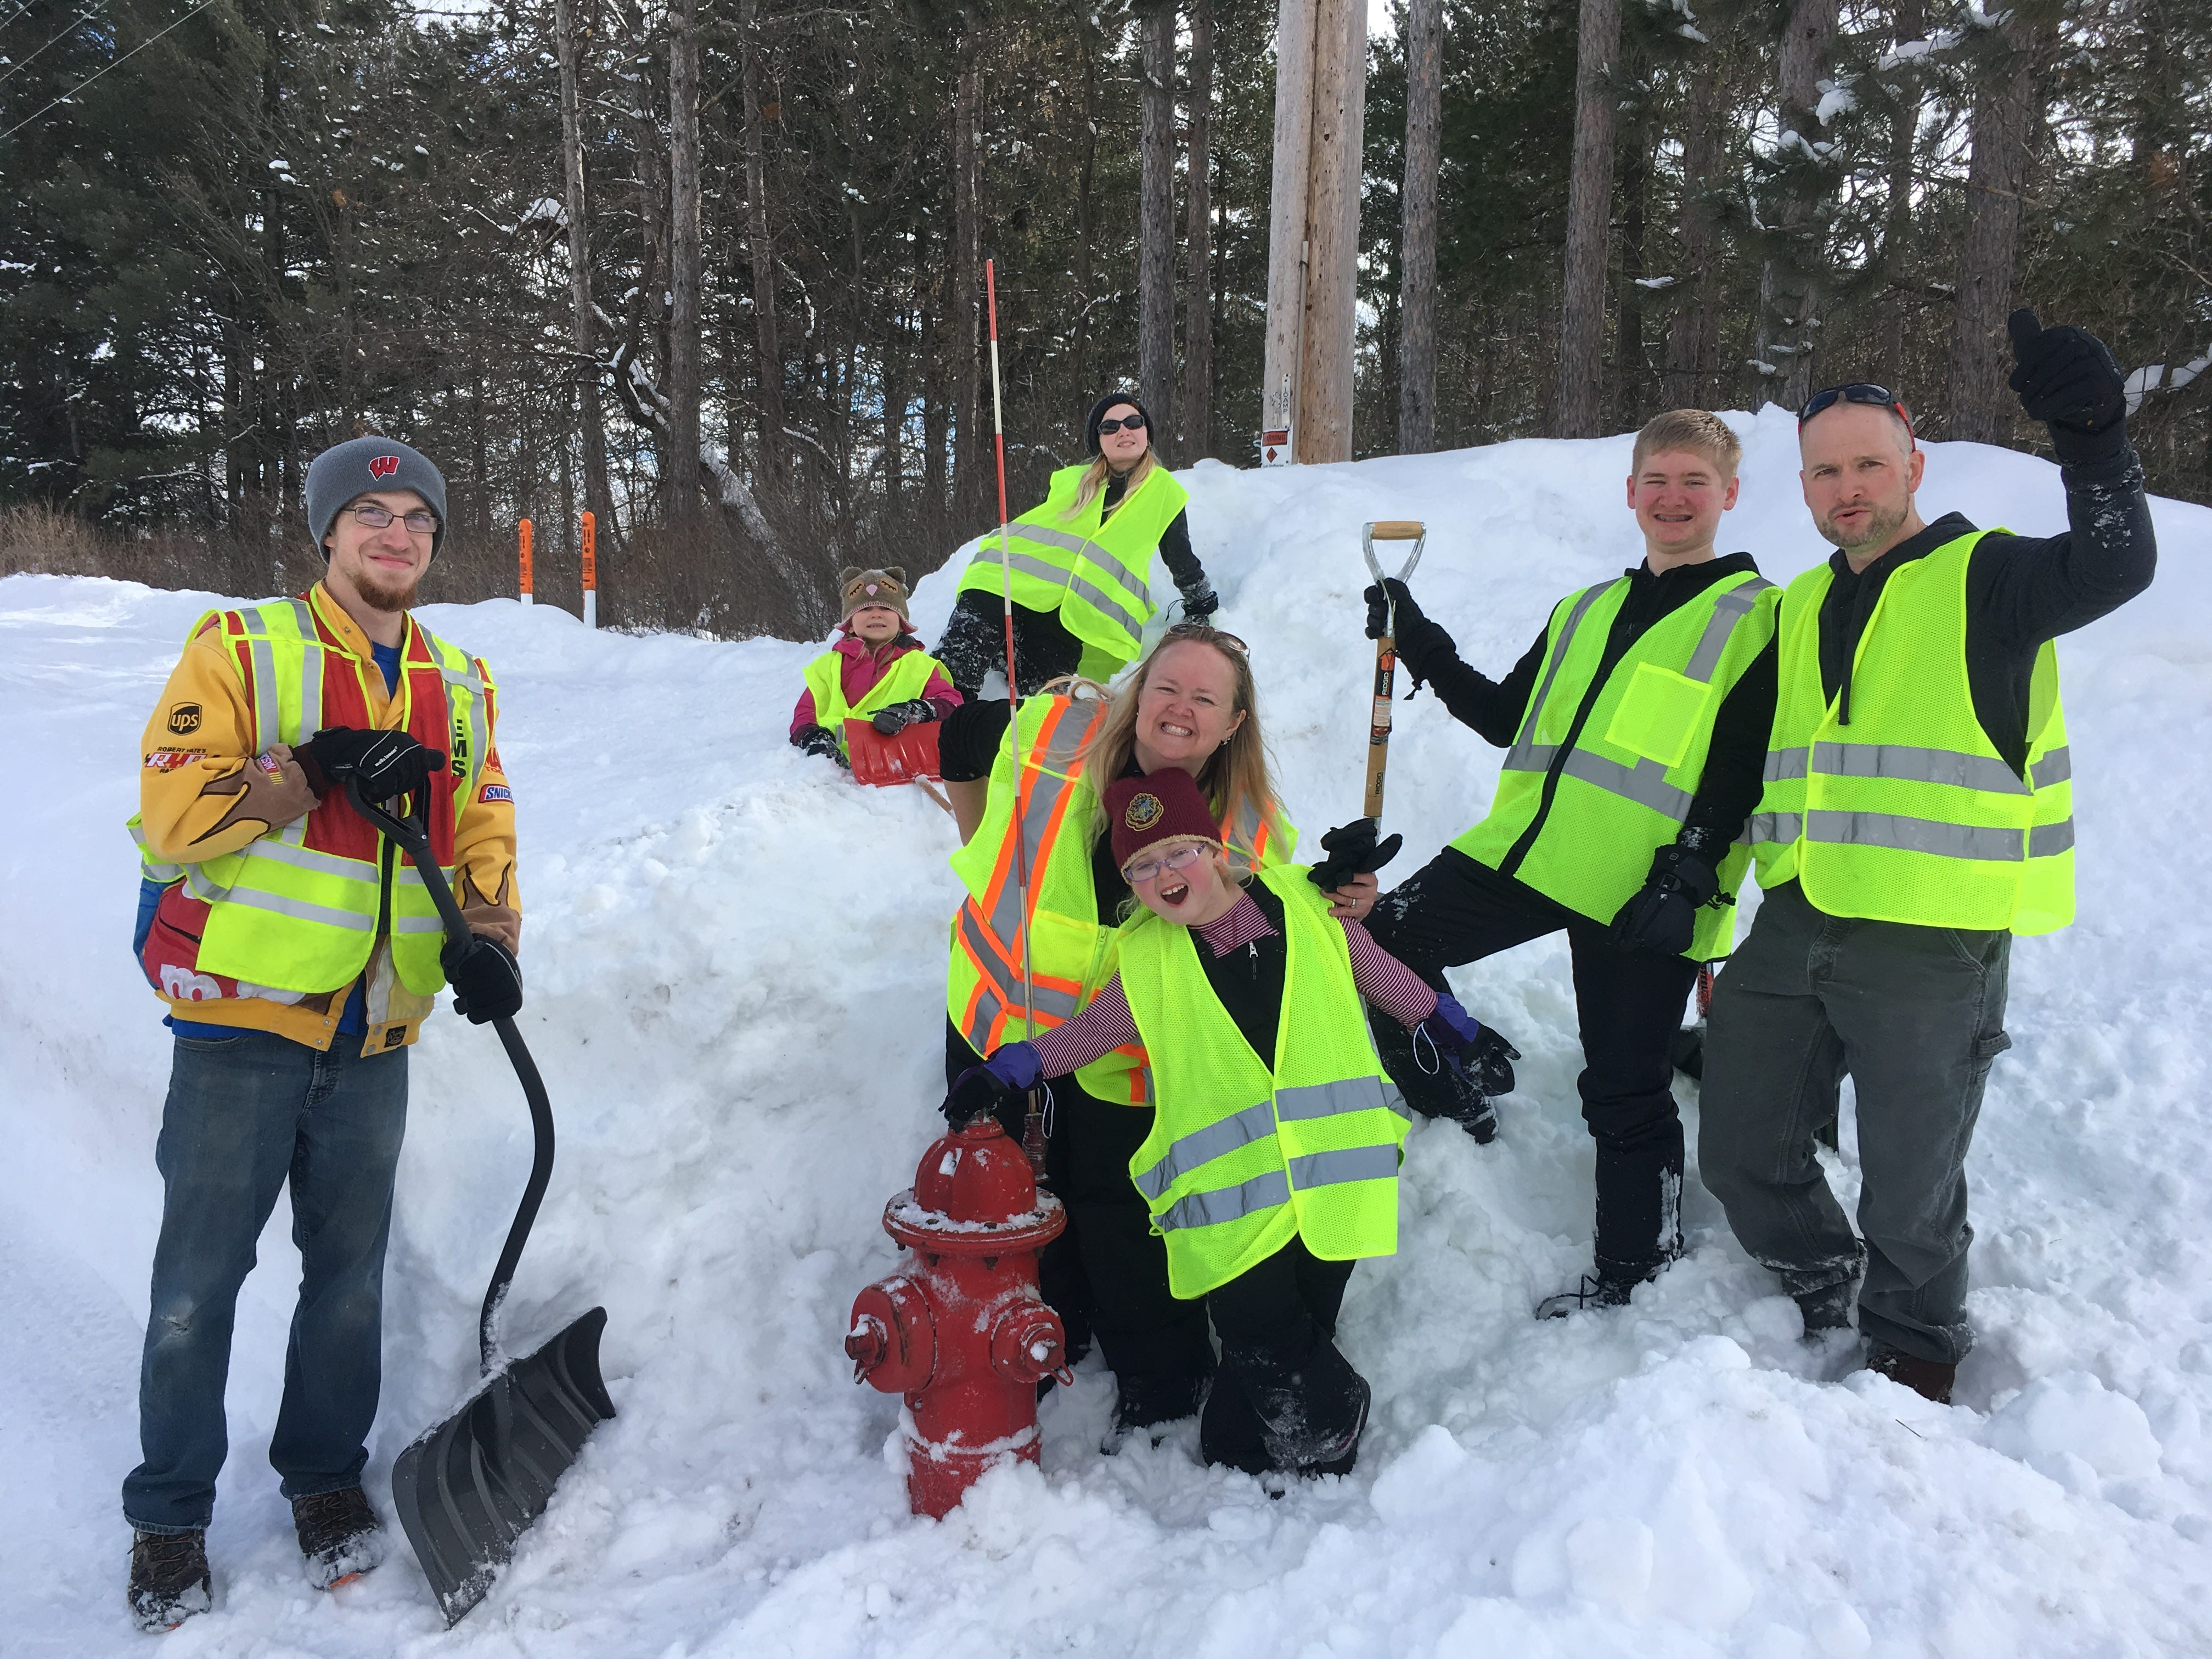 Volunteers dug out nearly 100 fire hydrants throughout Merrill on March 3 and 4, according to Fire Chief Josh Klug. Firefighters used maps and metal detectors to find the buried hydrants.